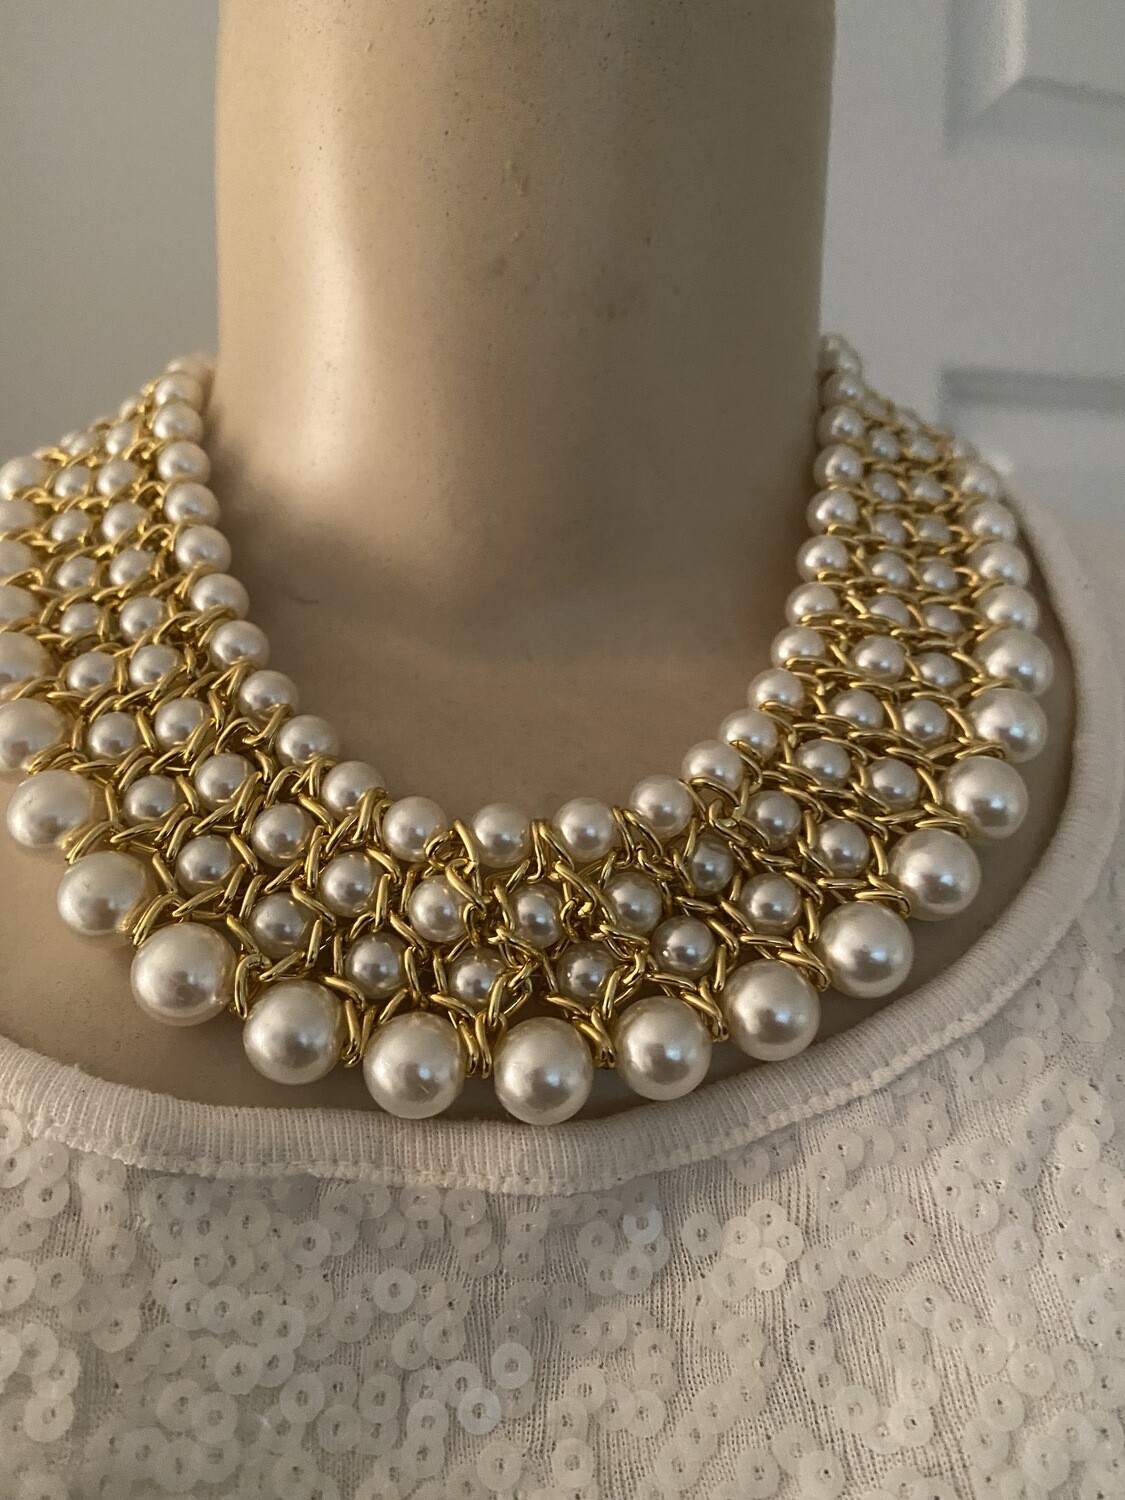 Pearl Statement BIB Necklace   Drop Earrings  Jewelry  Birthday Gifts  Mother's Day Gifts   Christmas gifts